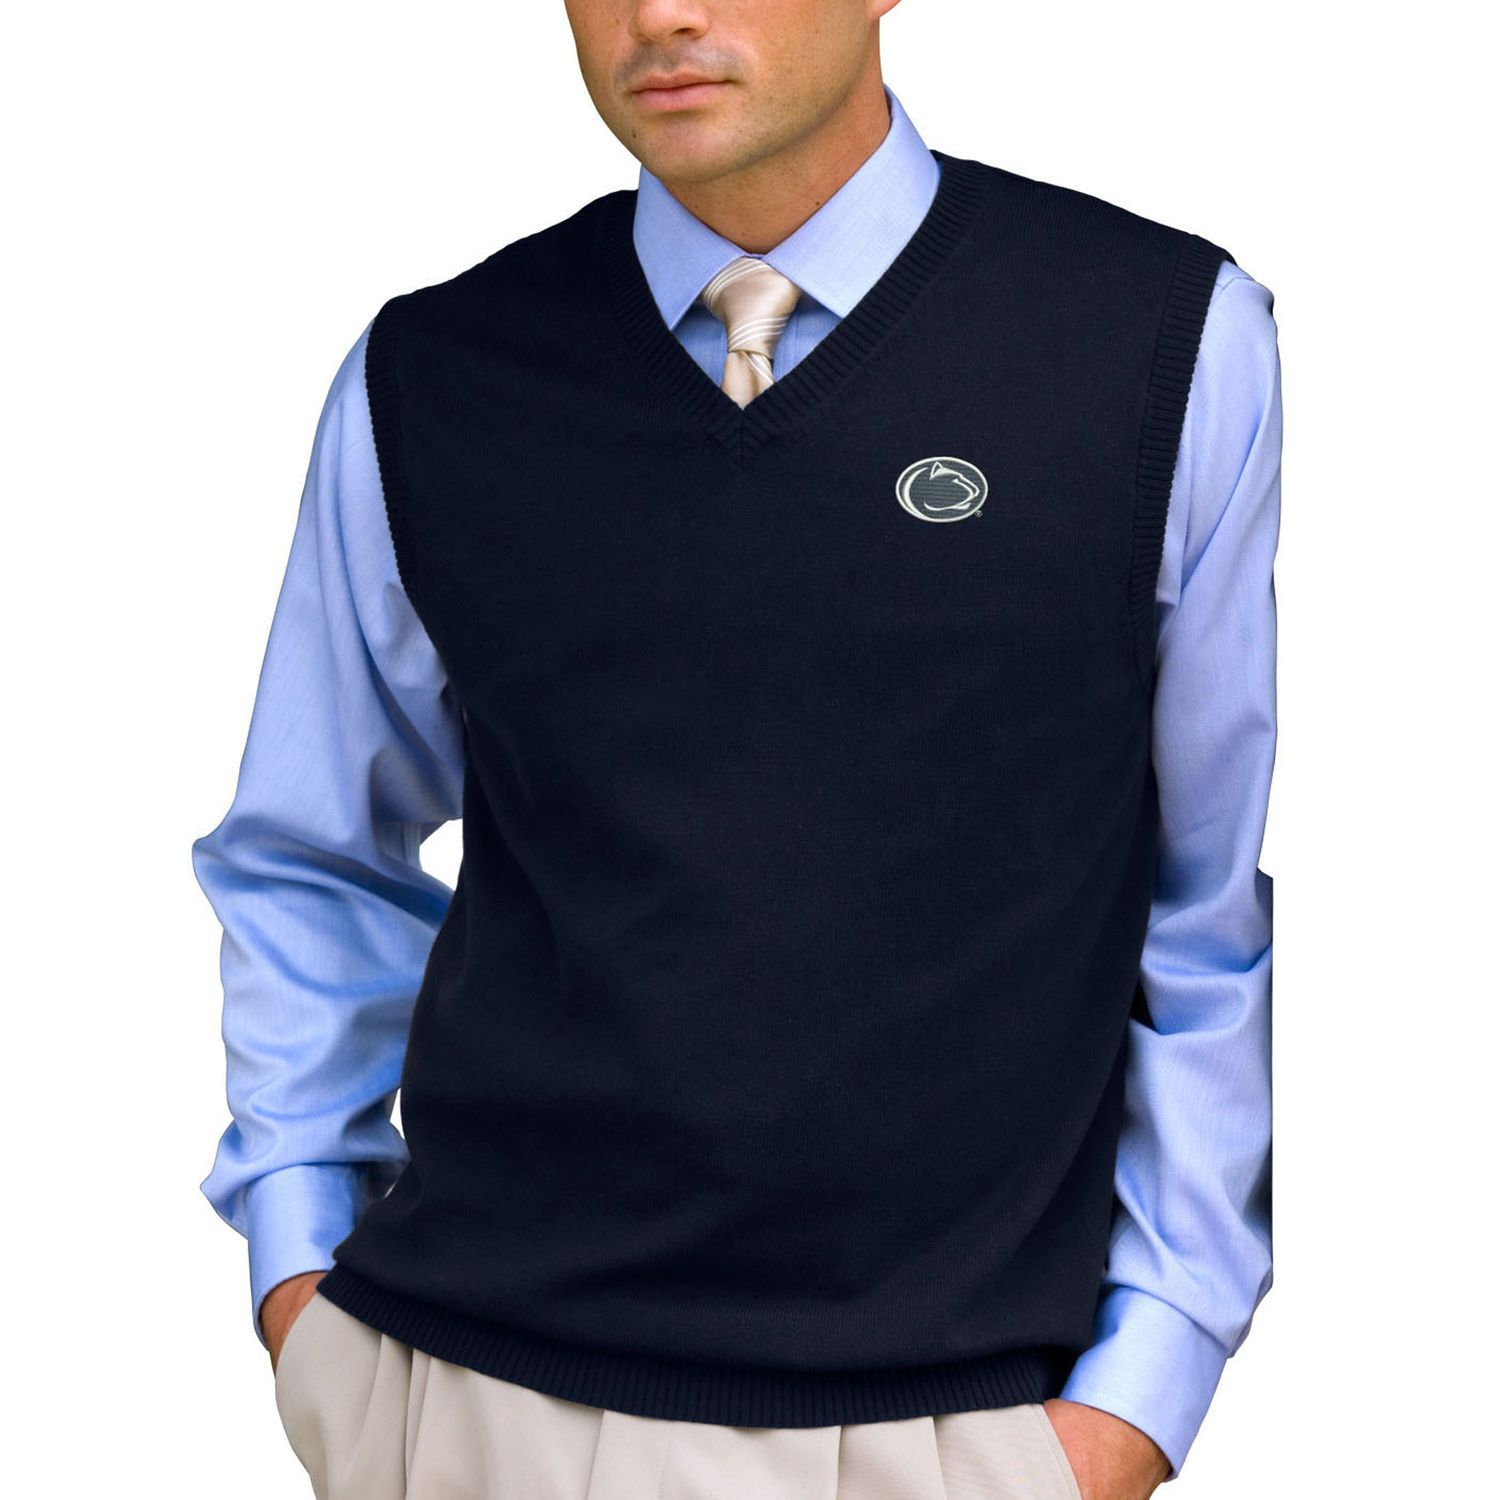 Penn State Nittany Lions Milano Knit Sweater Vest - Navy | Sweater ...